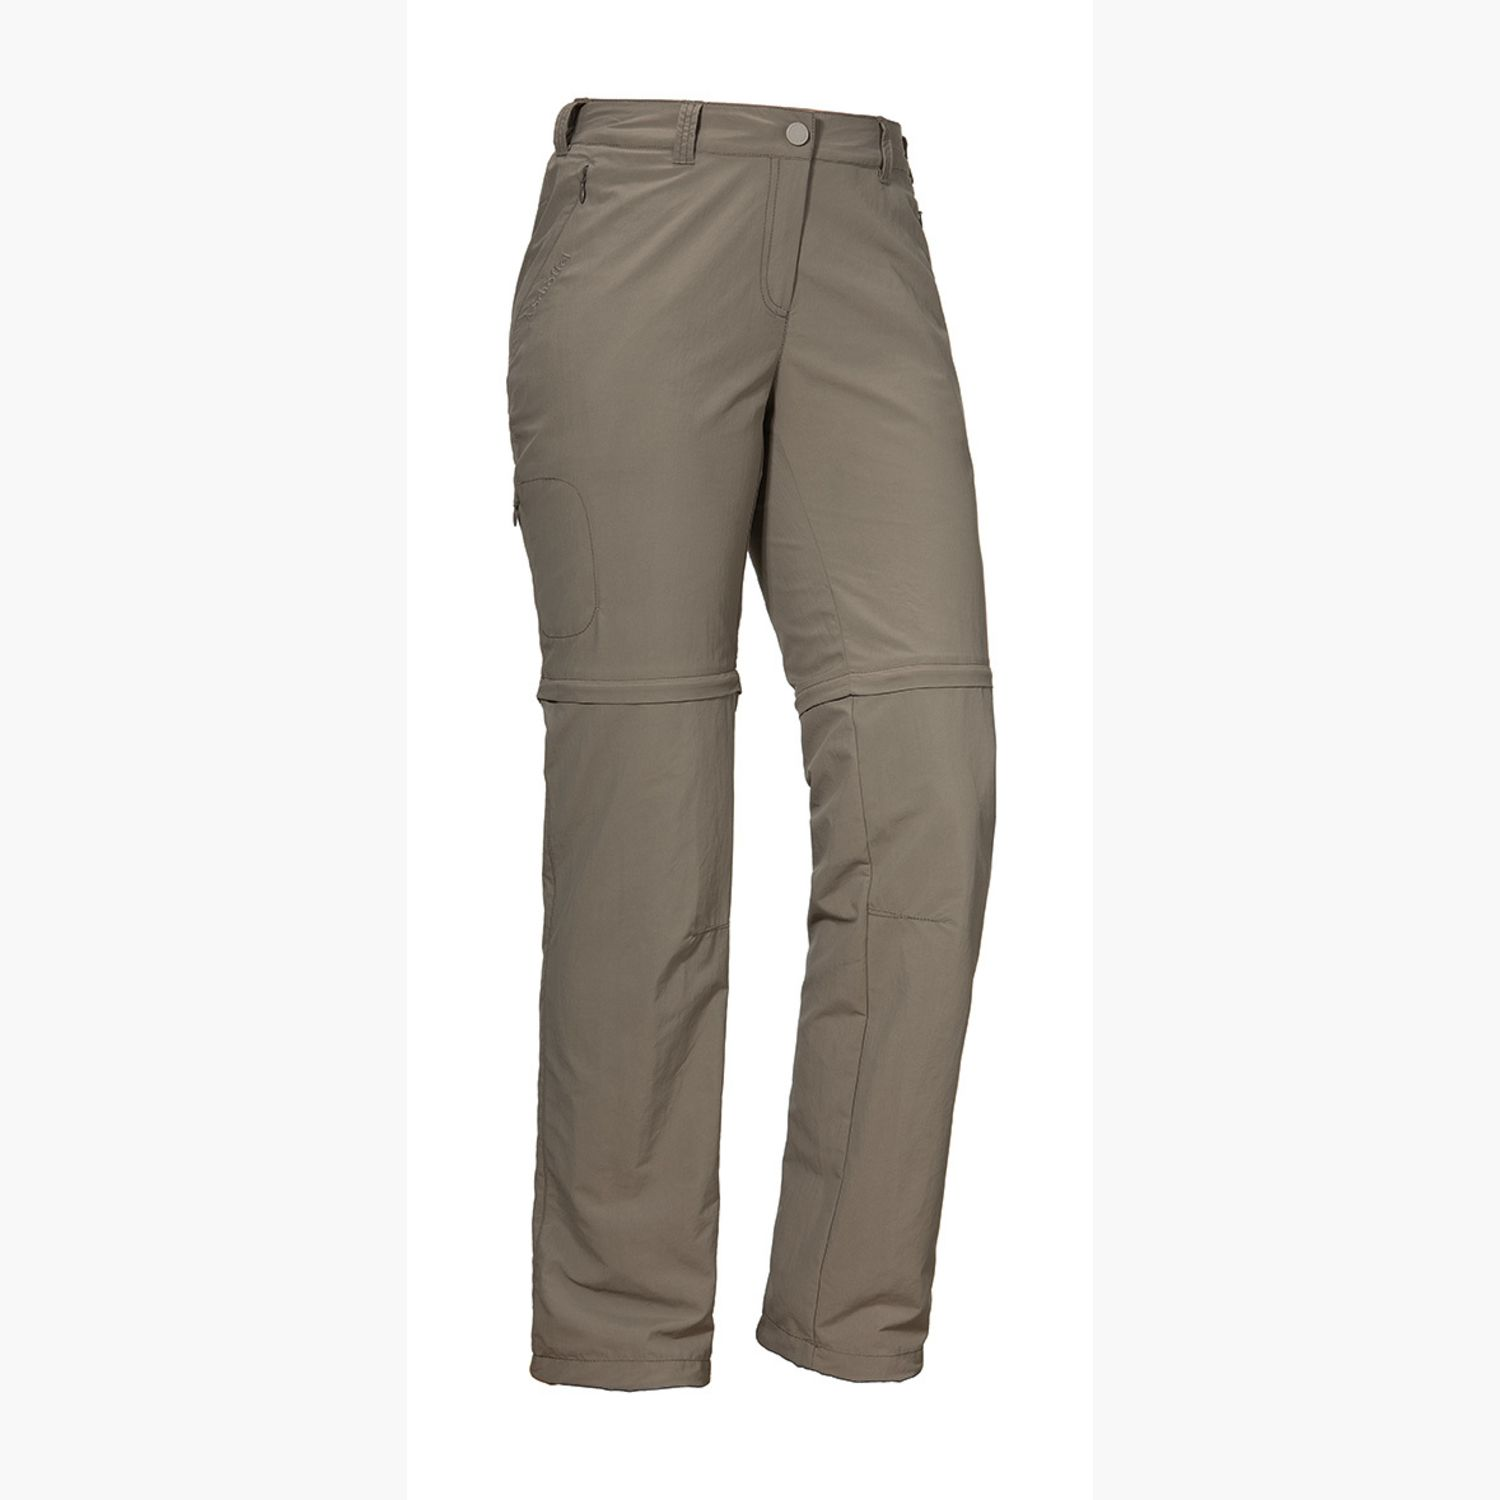 Pants Santa Fe Zip Off